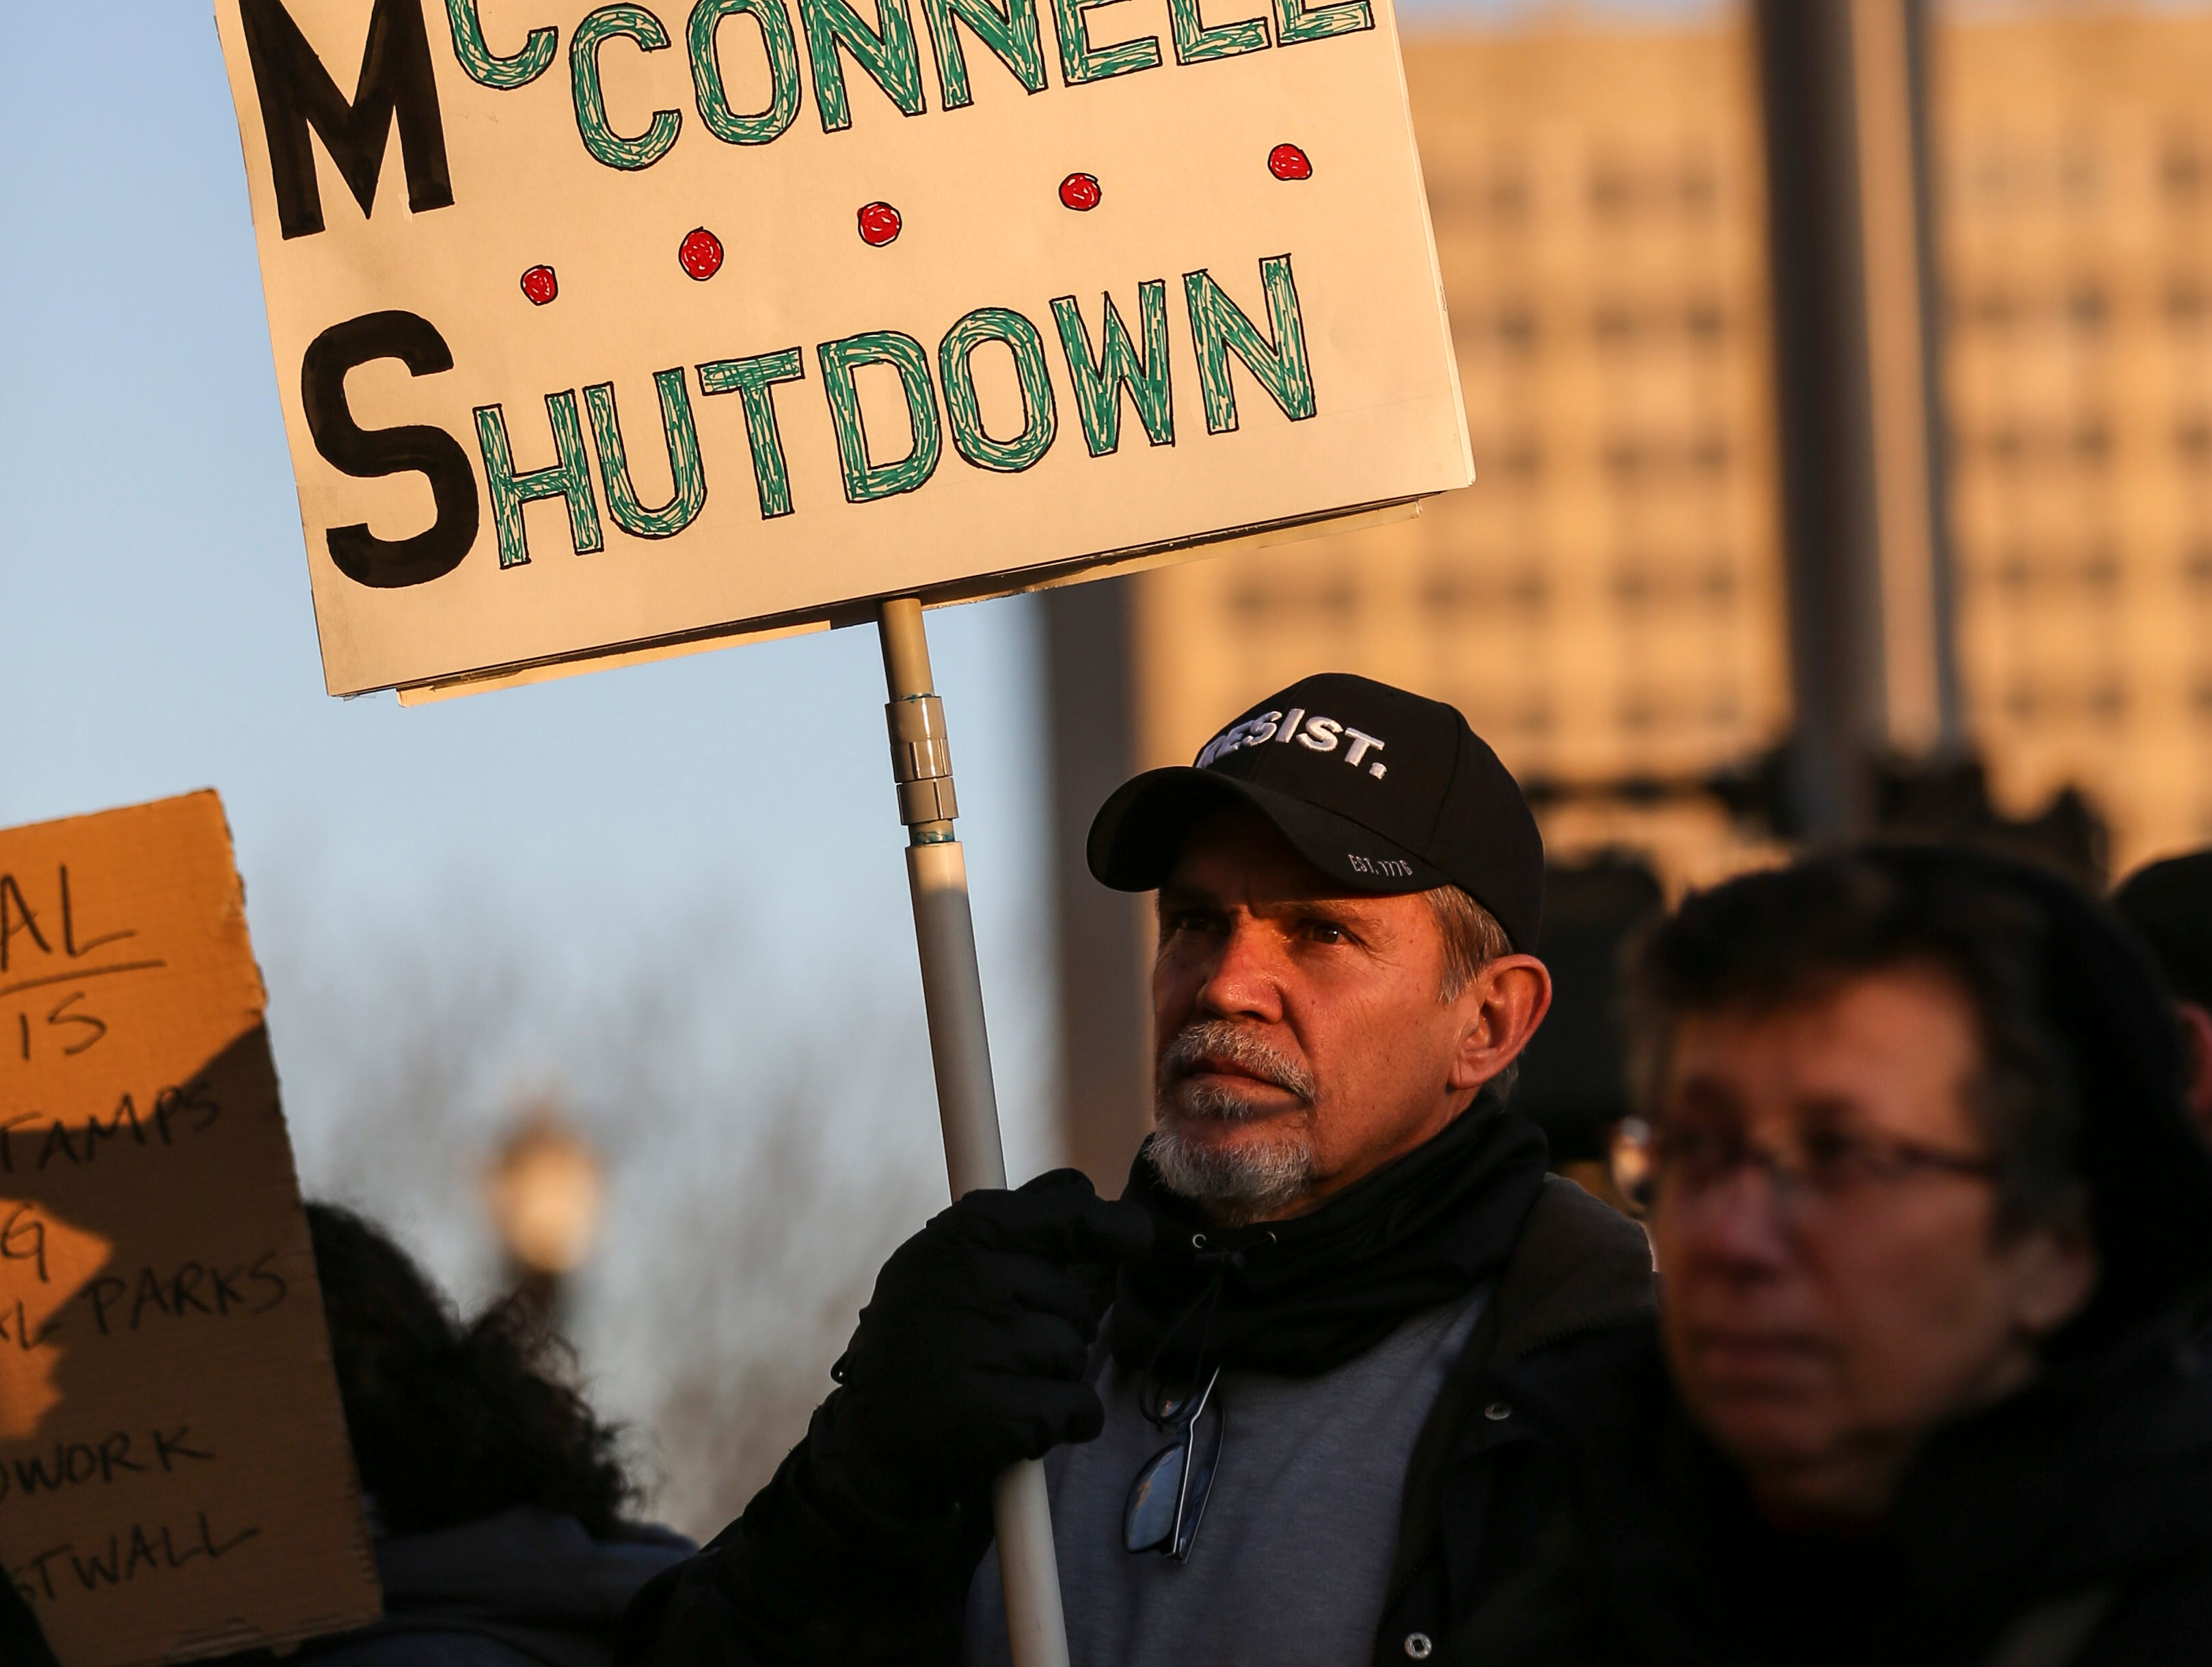 Frustrated federal employees of the government shutdown chanted 'End it now' and 'We want to work' outside Senate Majority leader Mitch McConnell's office Thursday afternoon in Louisville. January 10, 2019